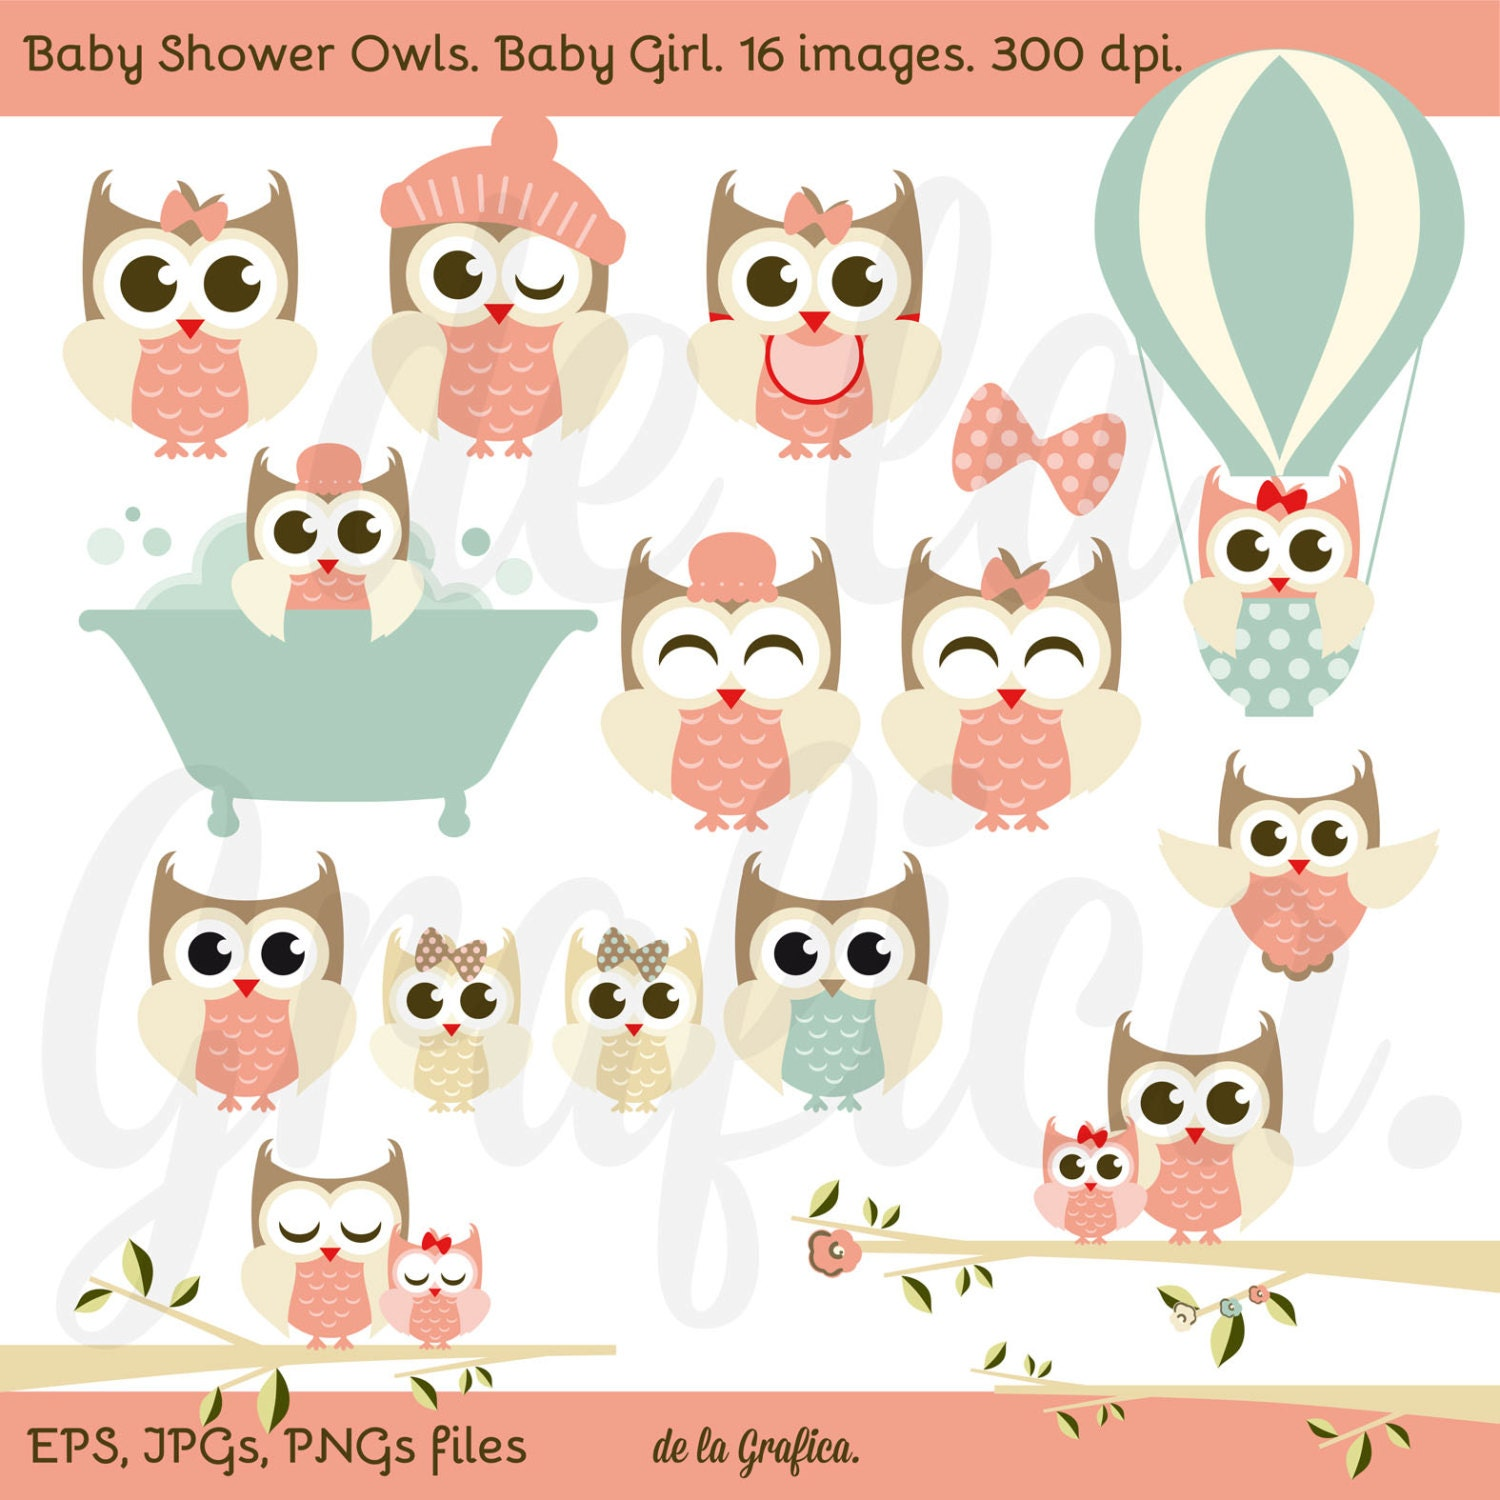 Baby Feet Clip Art Black And White Baby shower owls  girl babyBaby Owl Clipart Black And White